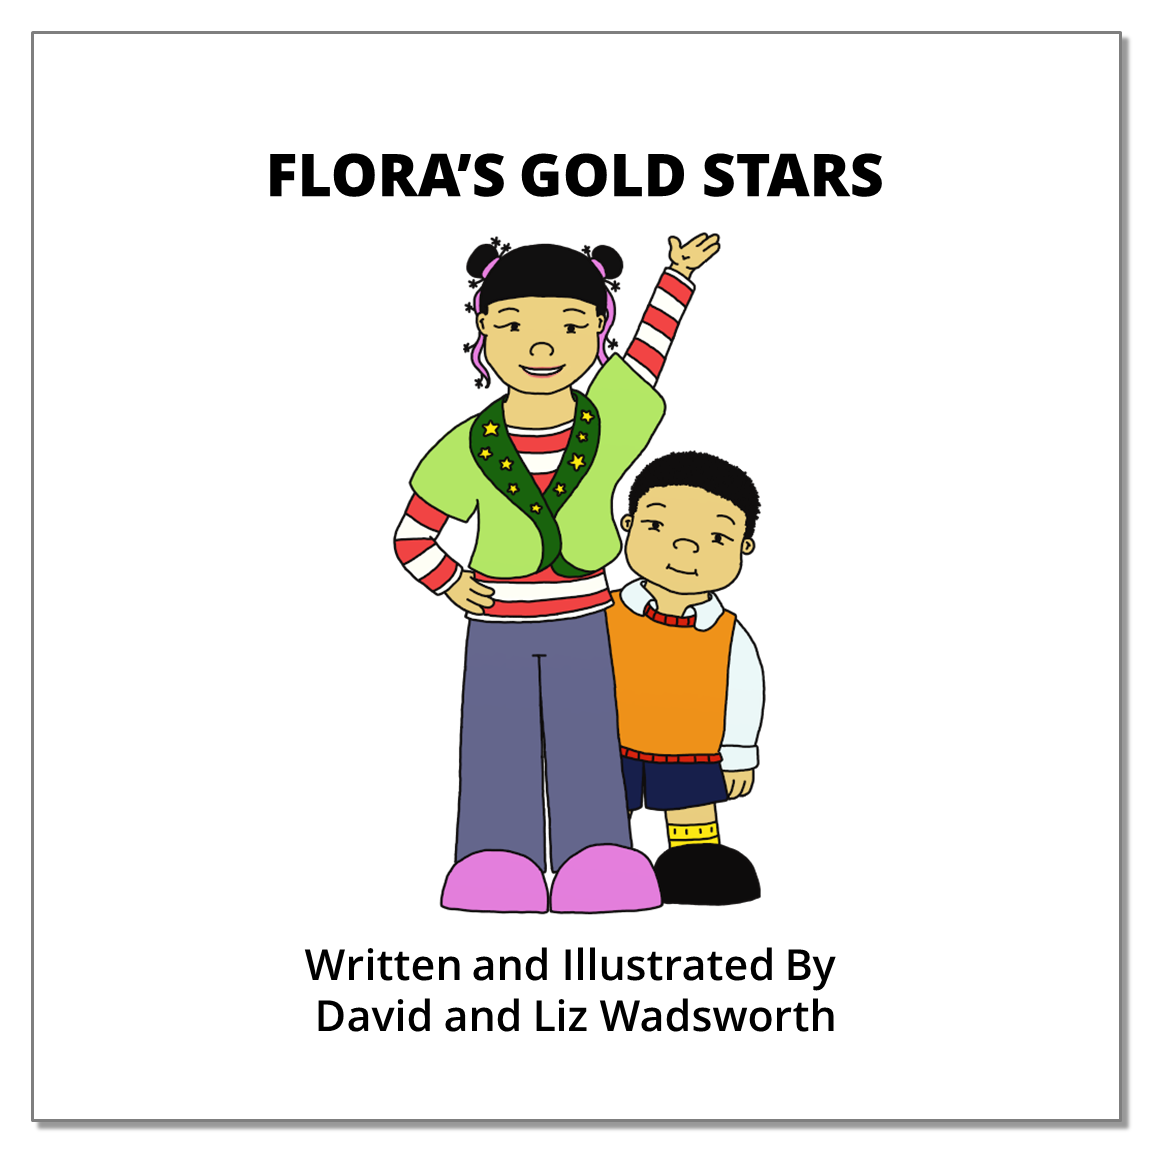 Flora's gold stars   - The parable of the plank and the speck.